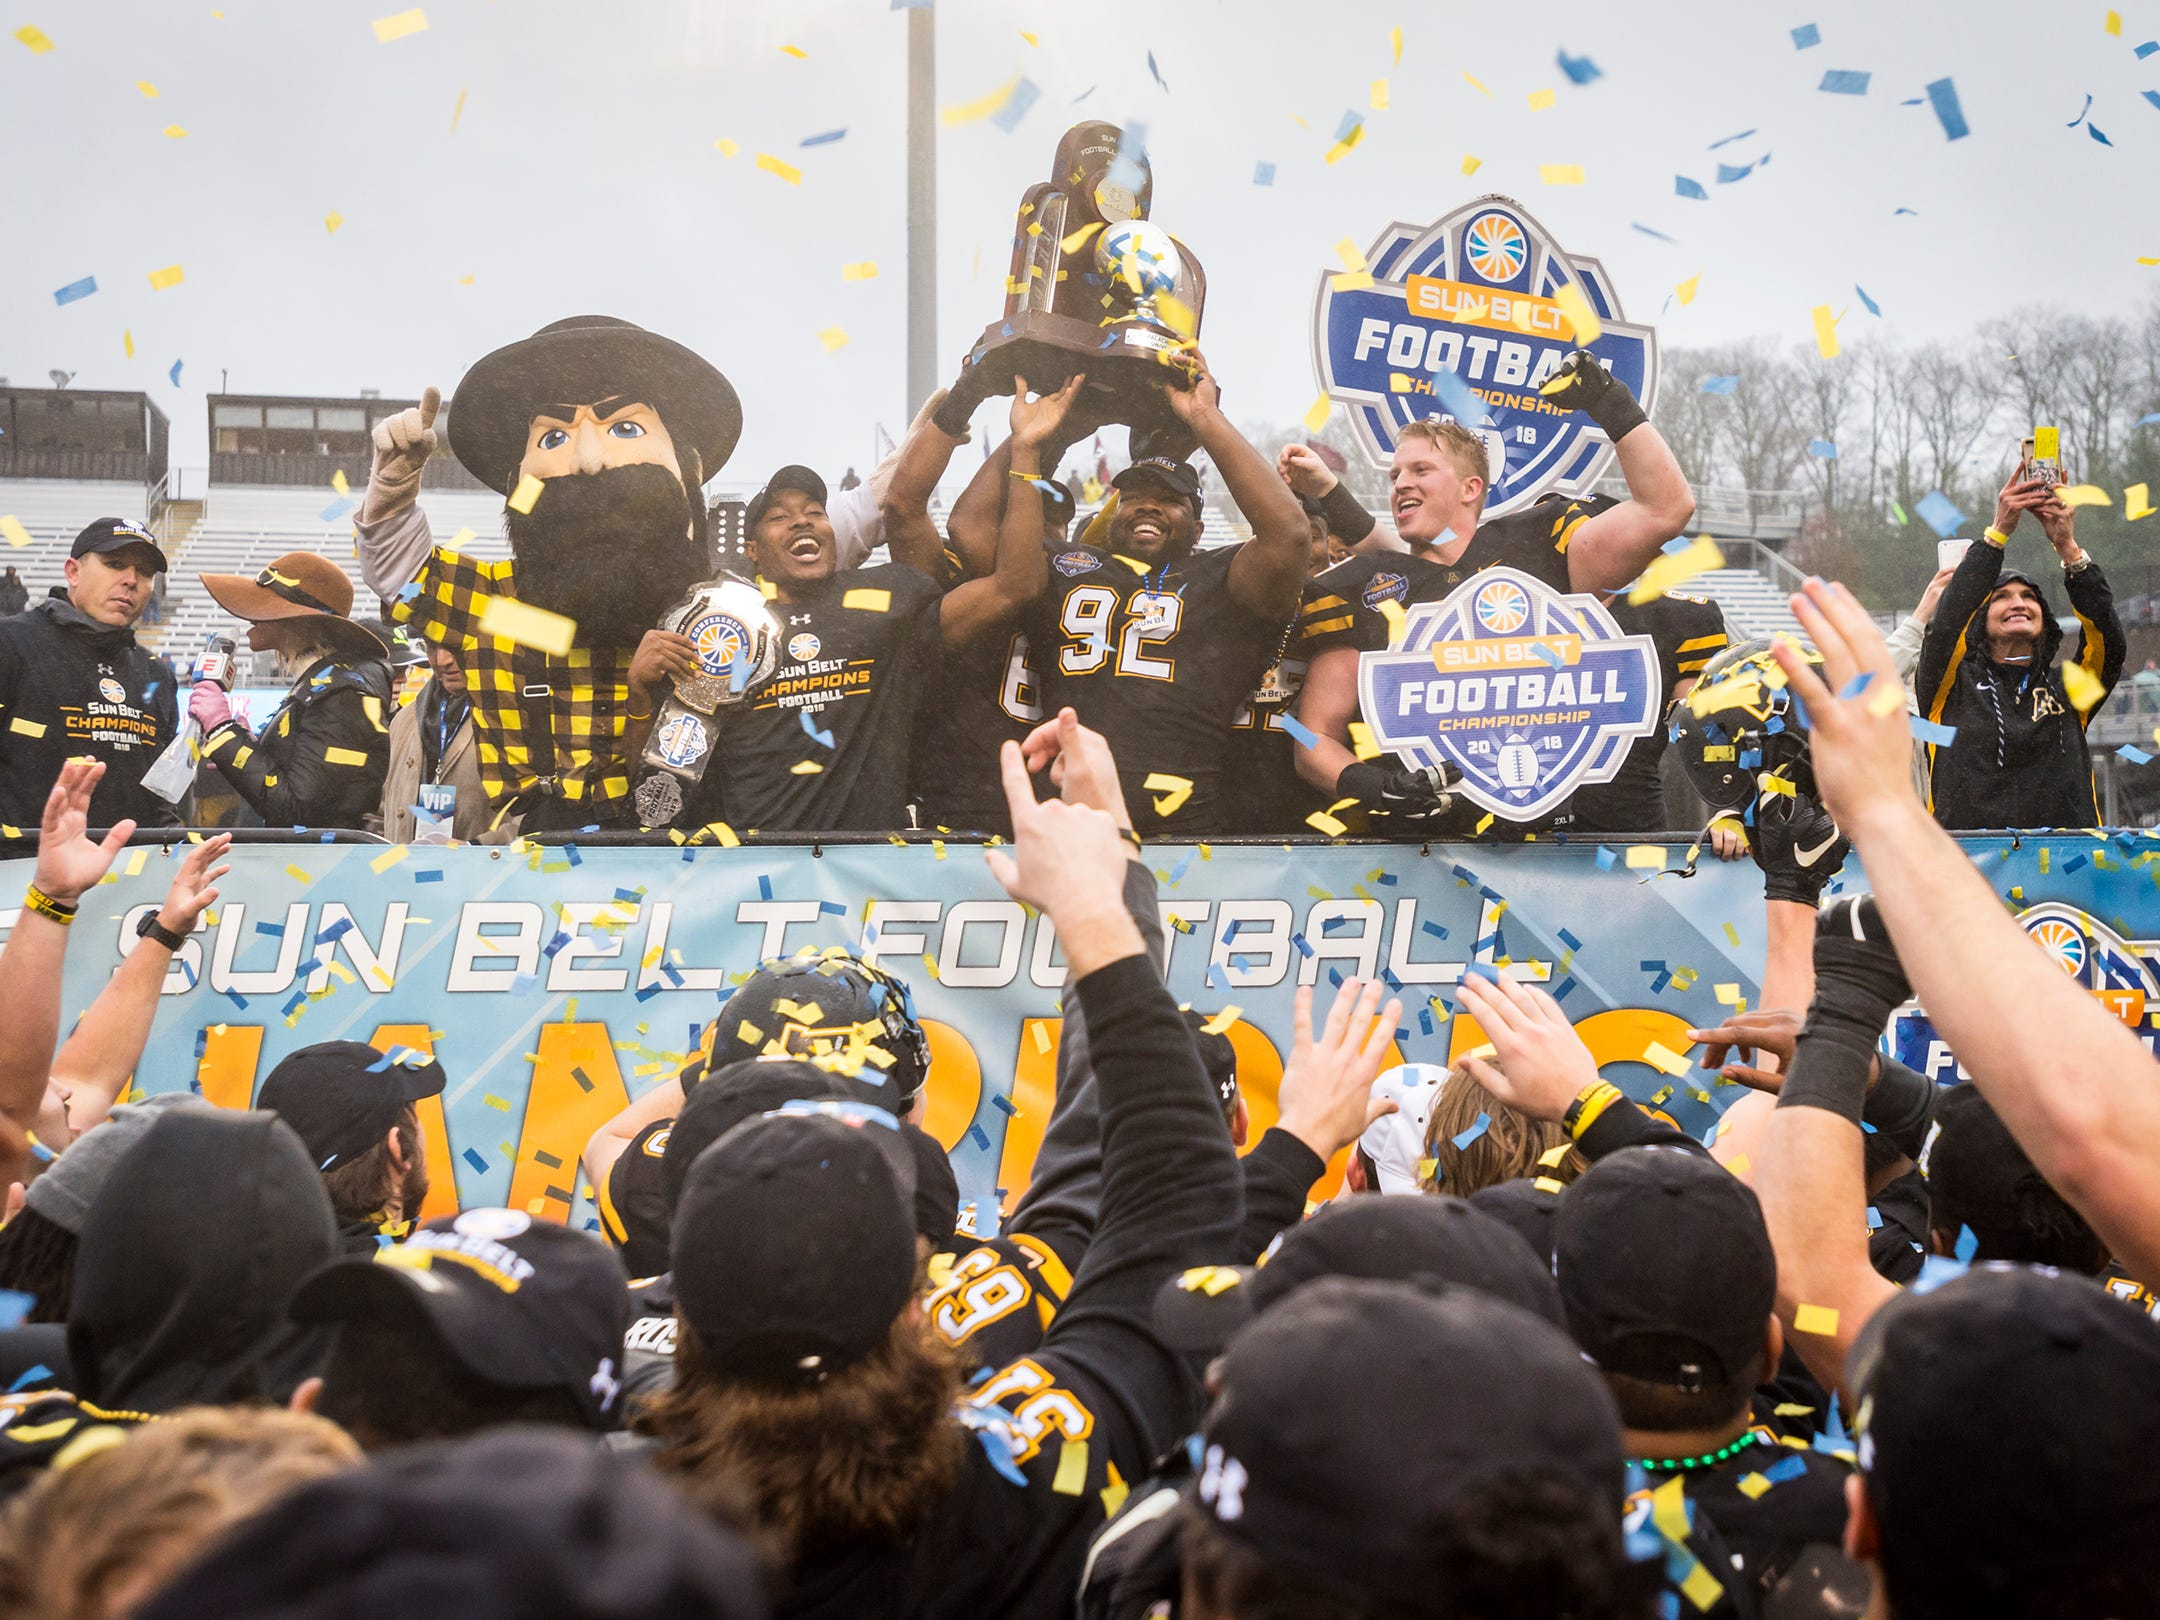 Appalachian State  defensive lineman MyQuon Stout (92) celebrates with his teammates after the Mountaineers defeated Louisiana 30-19 in the Sunbelt Championship on Saturday, Dec. 1, 2018 in Boone, N.C.